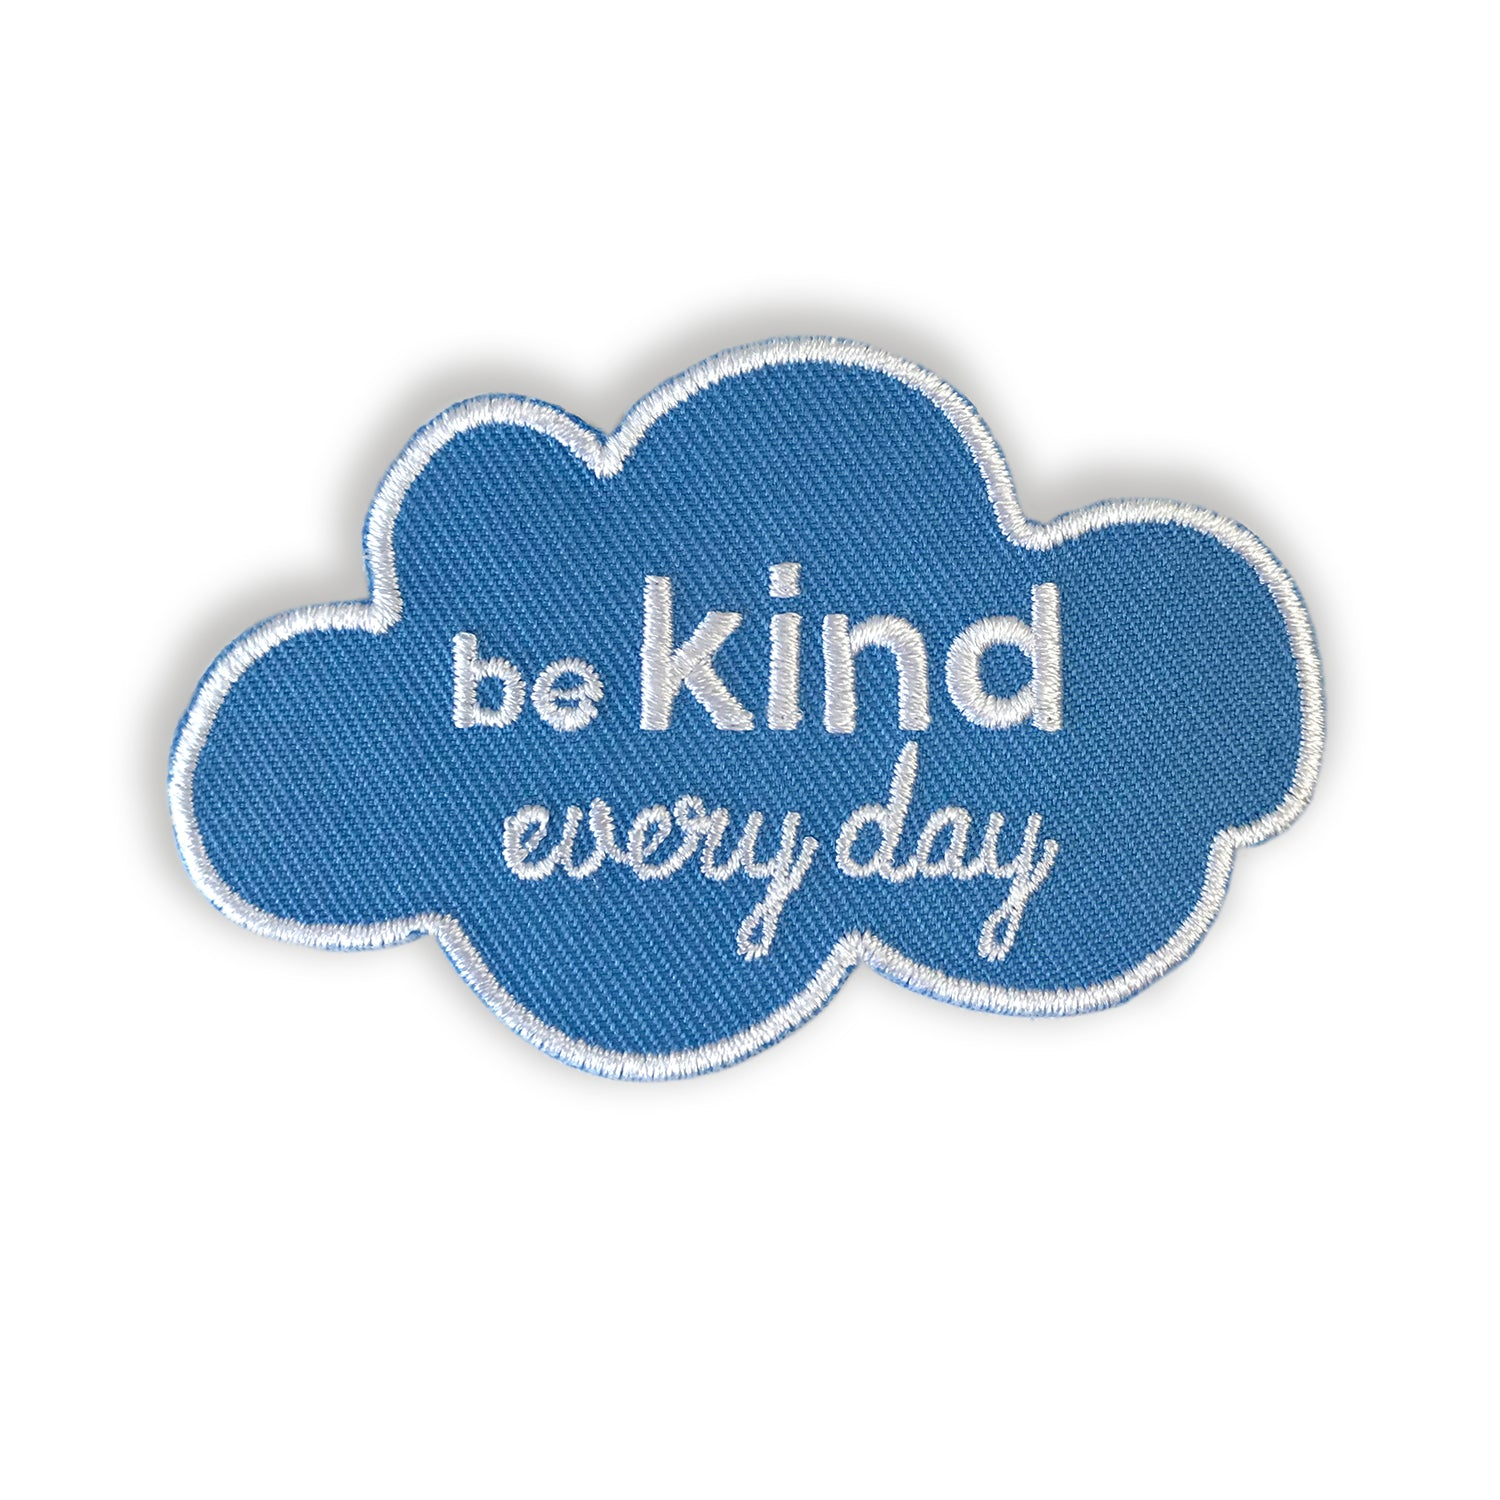 Be Kind Embroidered Patch - Auntie Mims